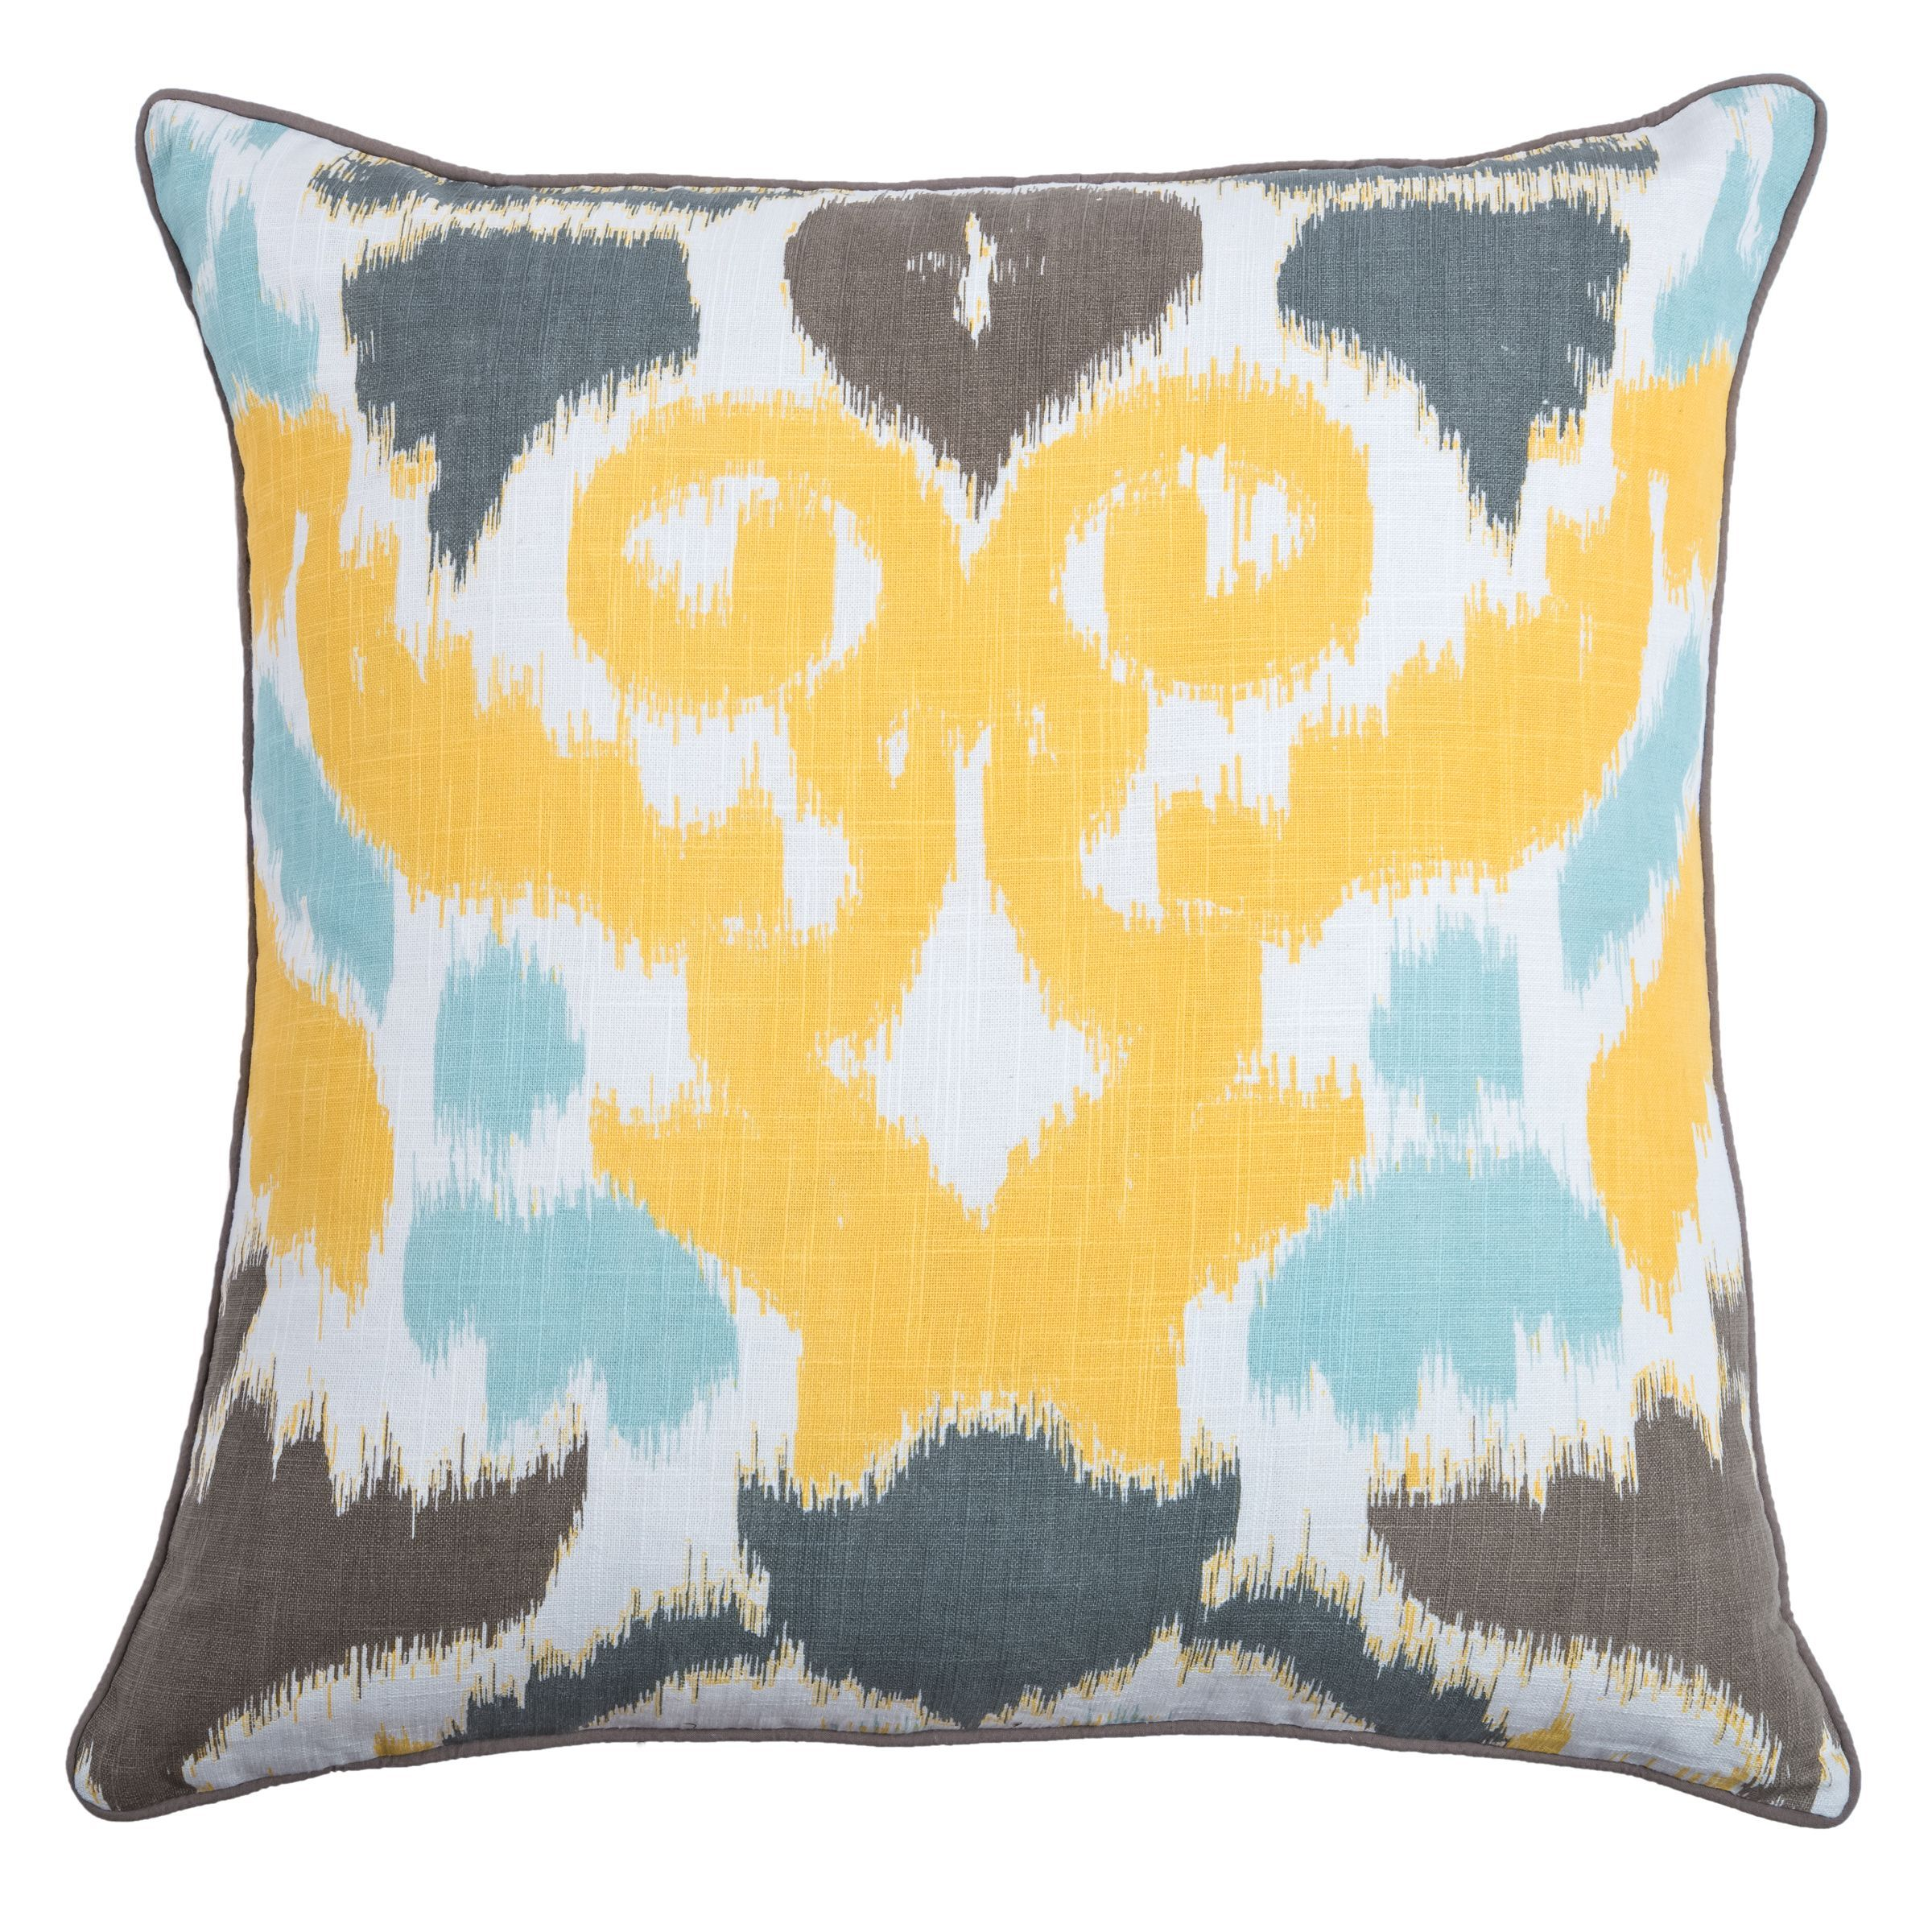 rizzy home laura fair yellow ikat inch decorative throw pillow  - rizzy home laura fair yellow ikat inch decorative throw pillow by rizzyhome